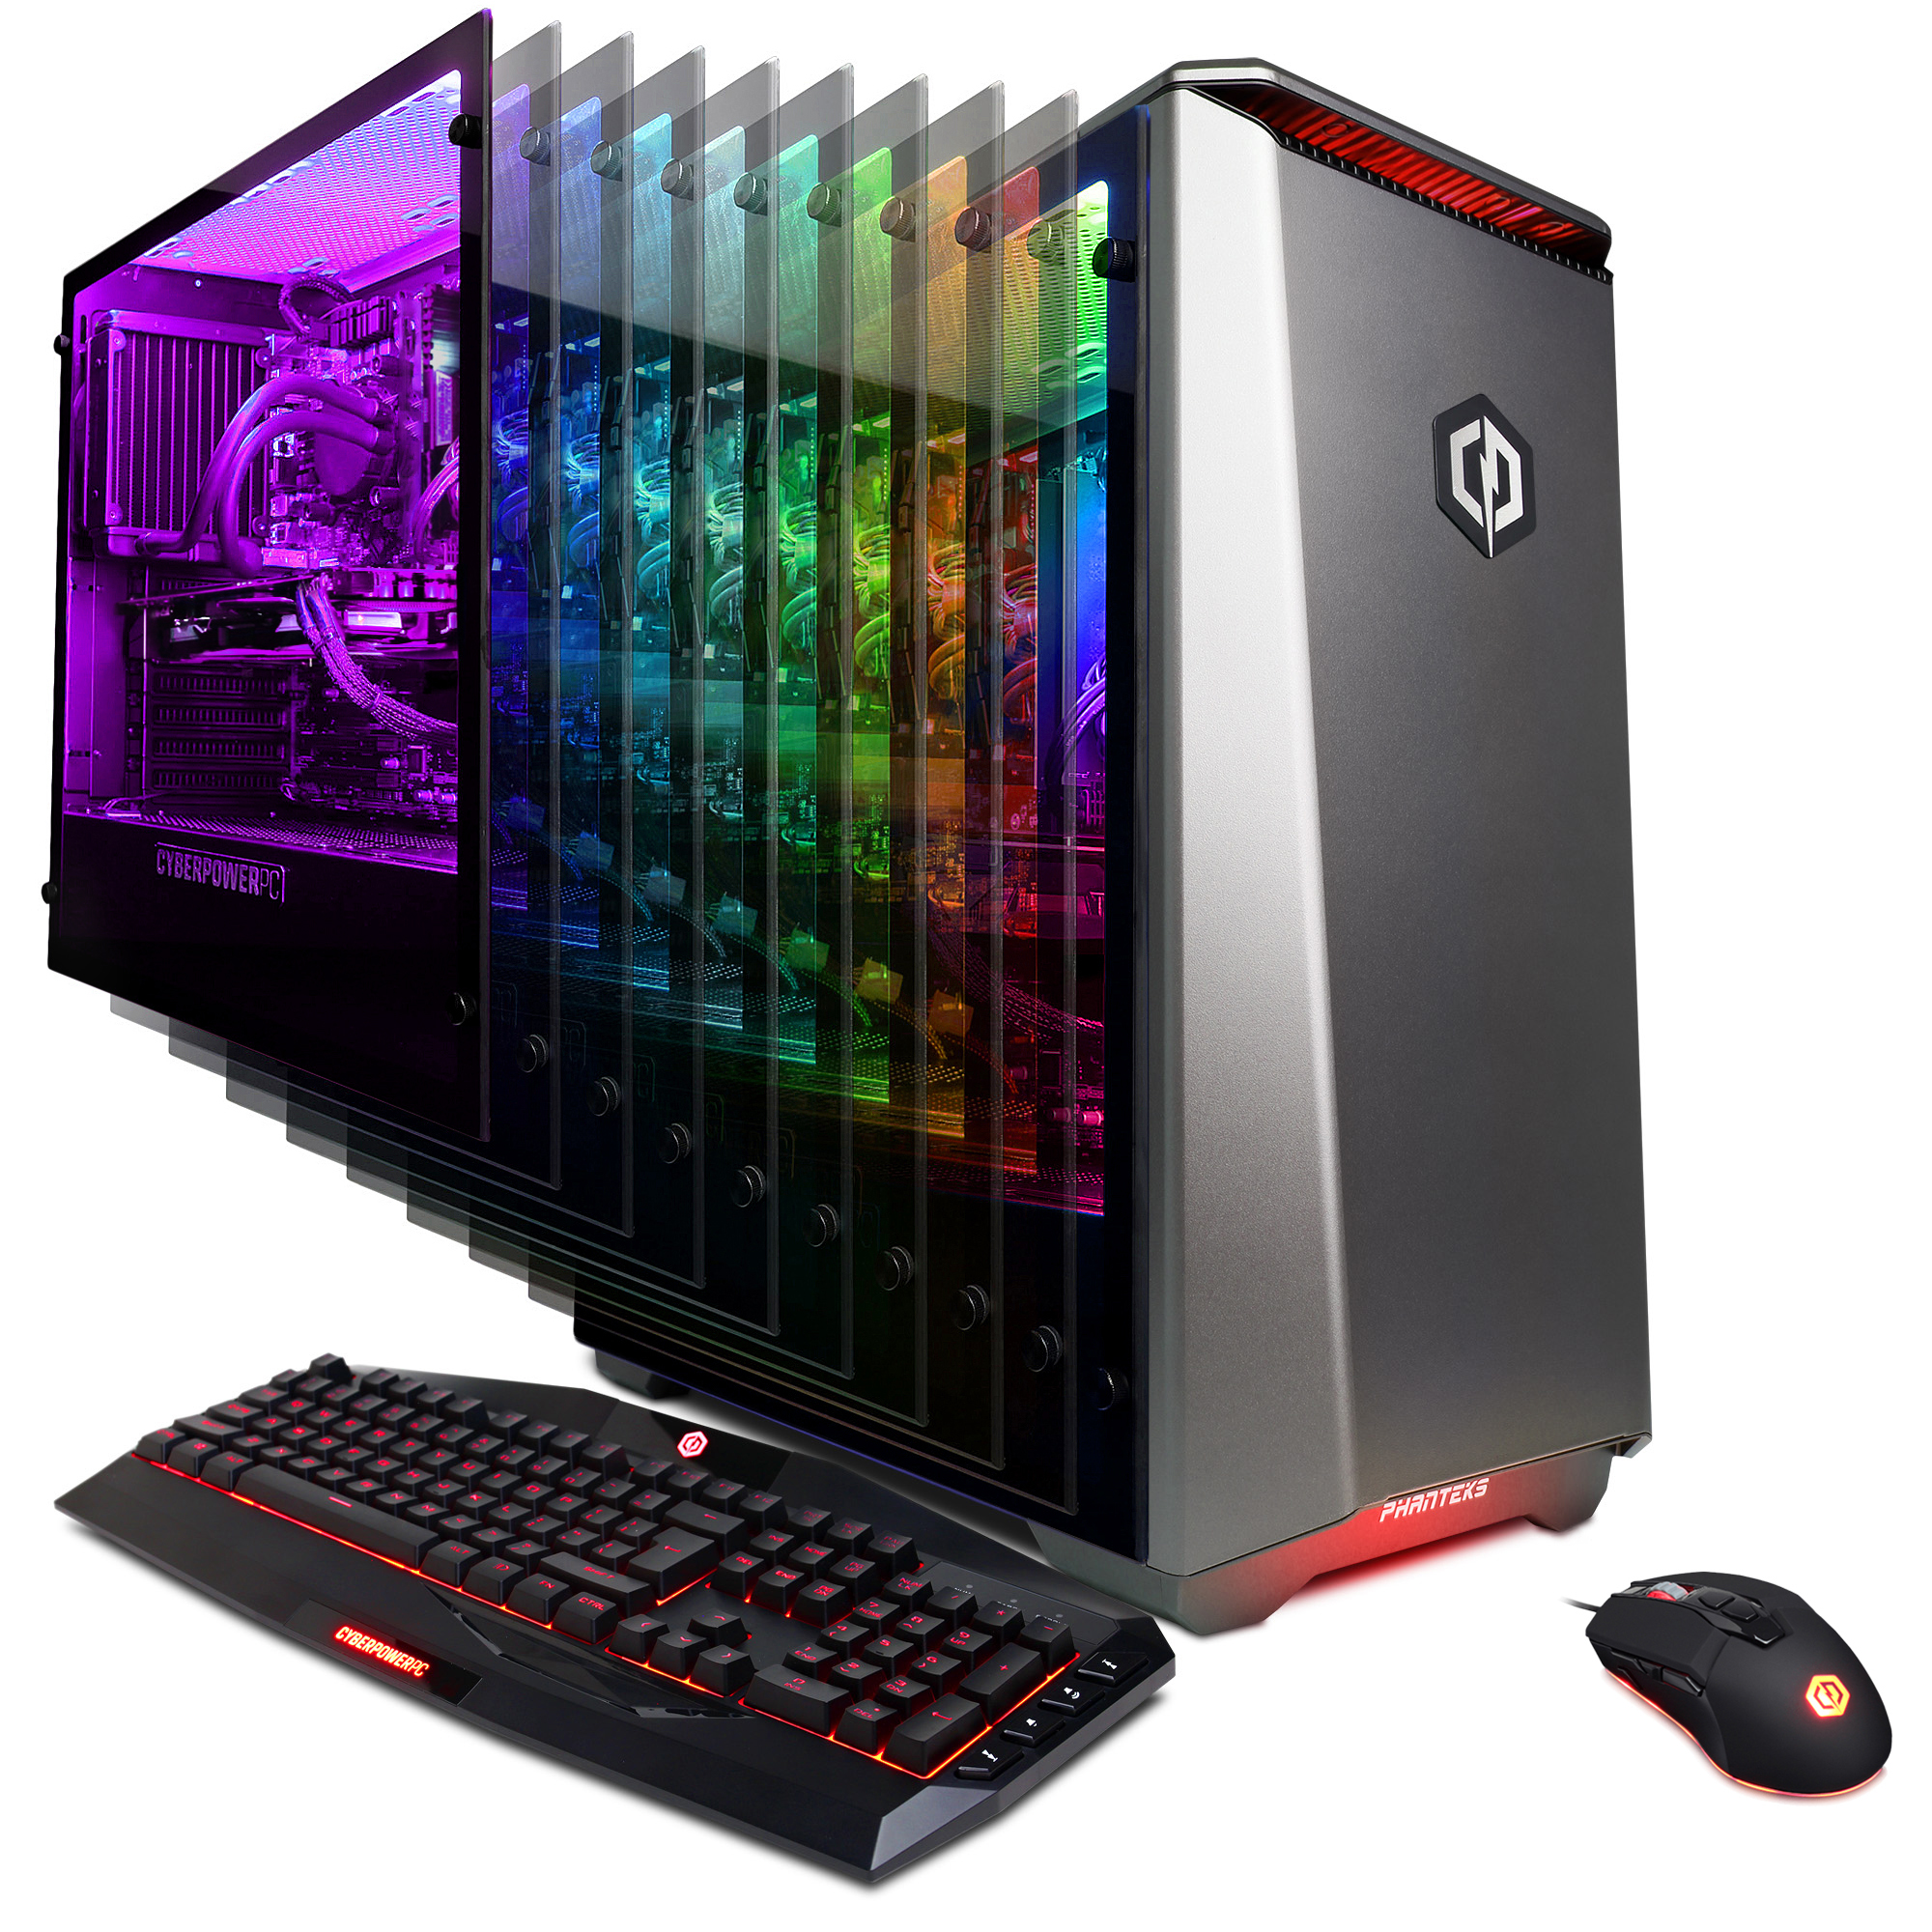 CYBERPOWERPC Gamer Panzer Limited PL3800W Gaming PC w/ Liquid Cooled Intel i7+ 8086K 4.0GHz CPU, 8GB DDR4, NVIDIA GeForce GTX 1060 6GB, 1TB HDD + 16GB Intel Optane Memory, WiFi, Windows 10 Home 64-Bit